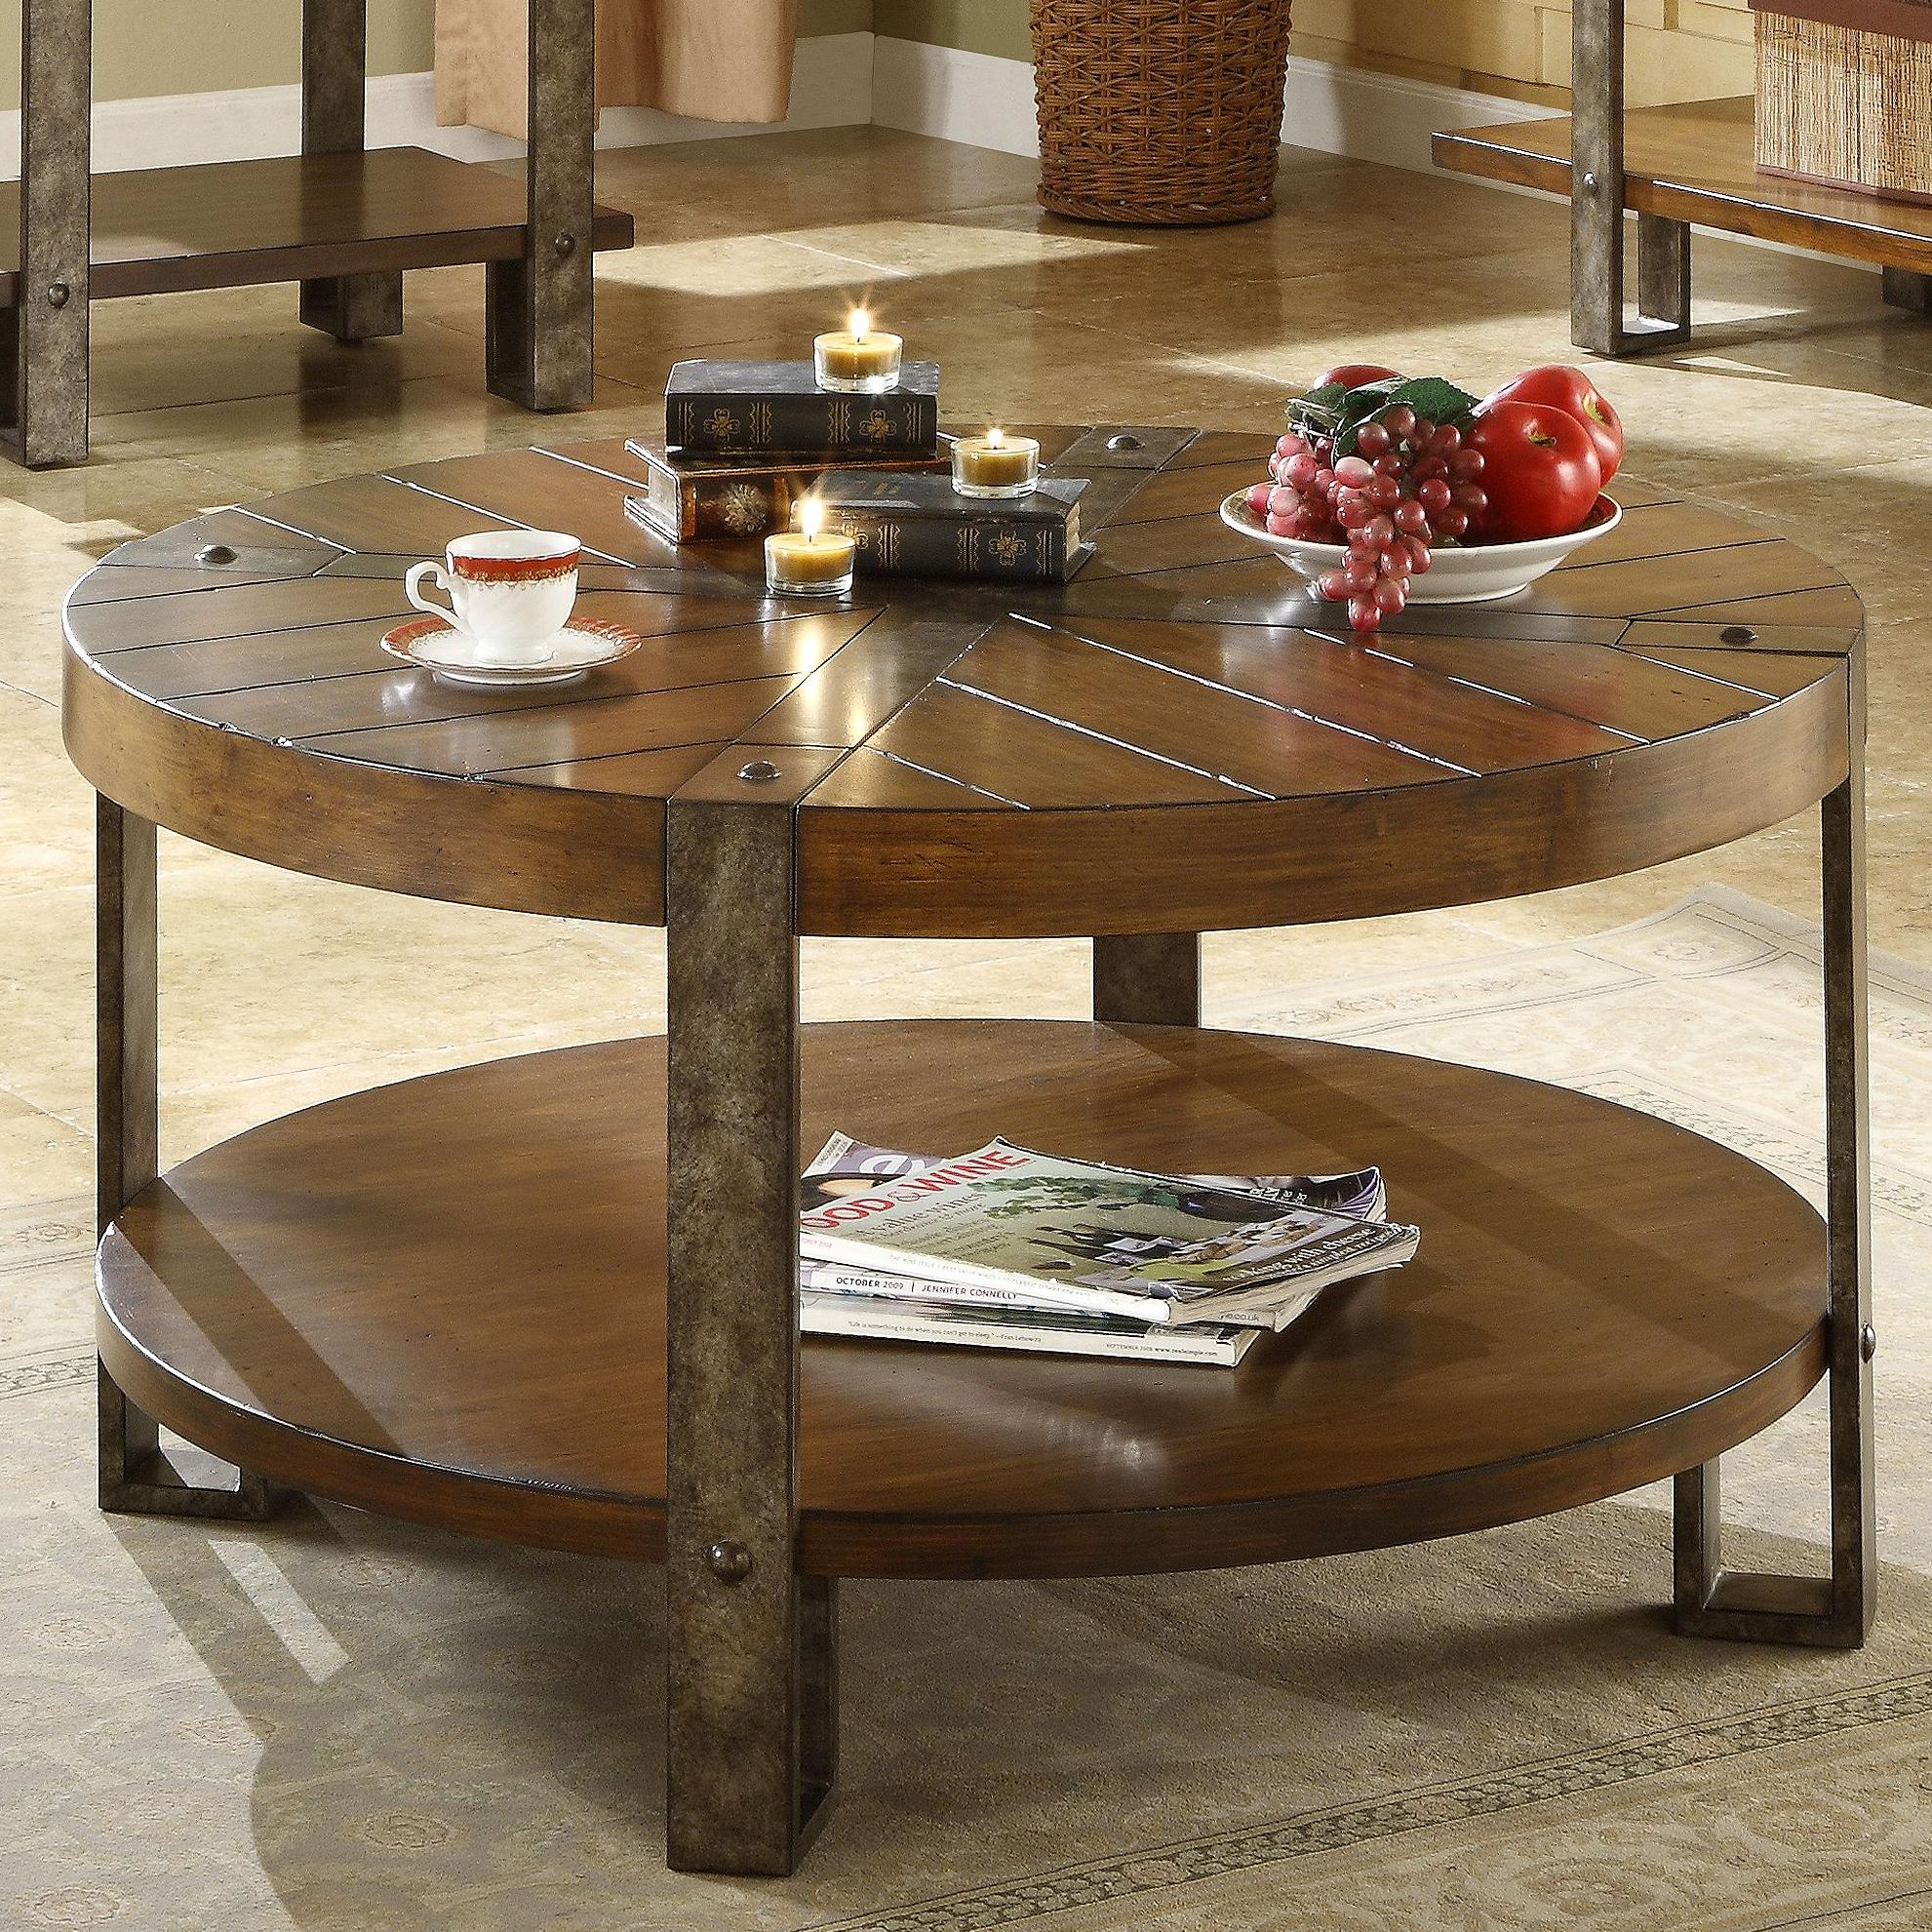 Riverside Furniture Sierra Round Wooden Coffee Table with